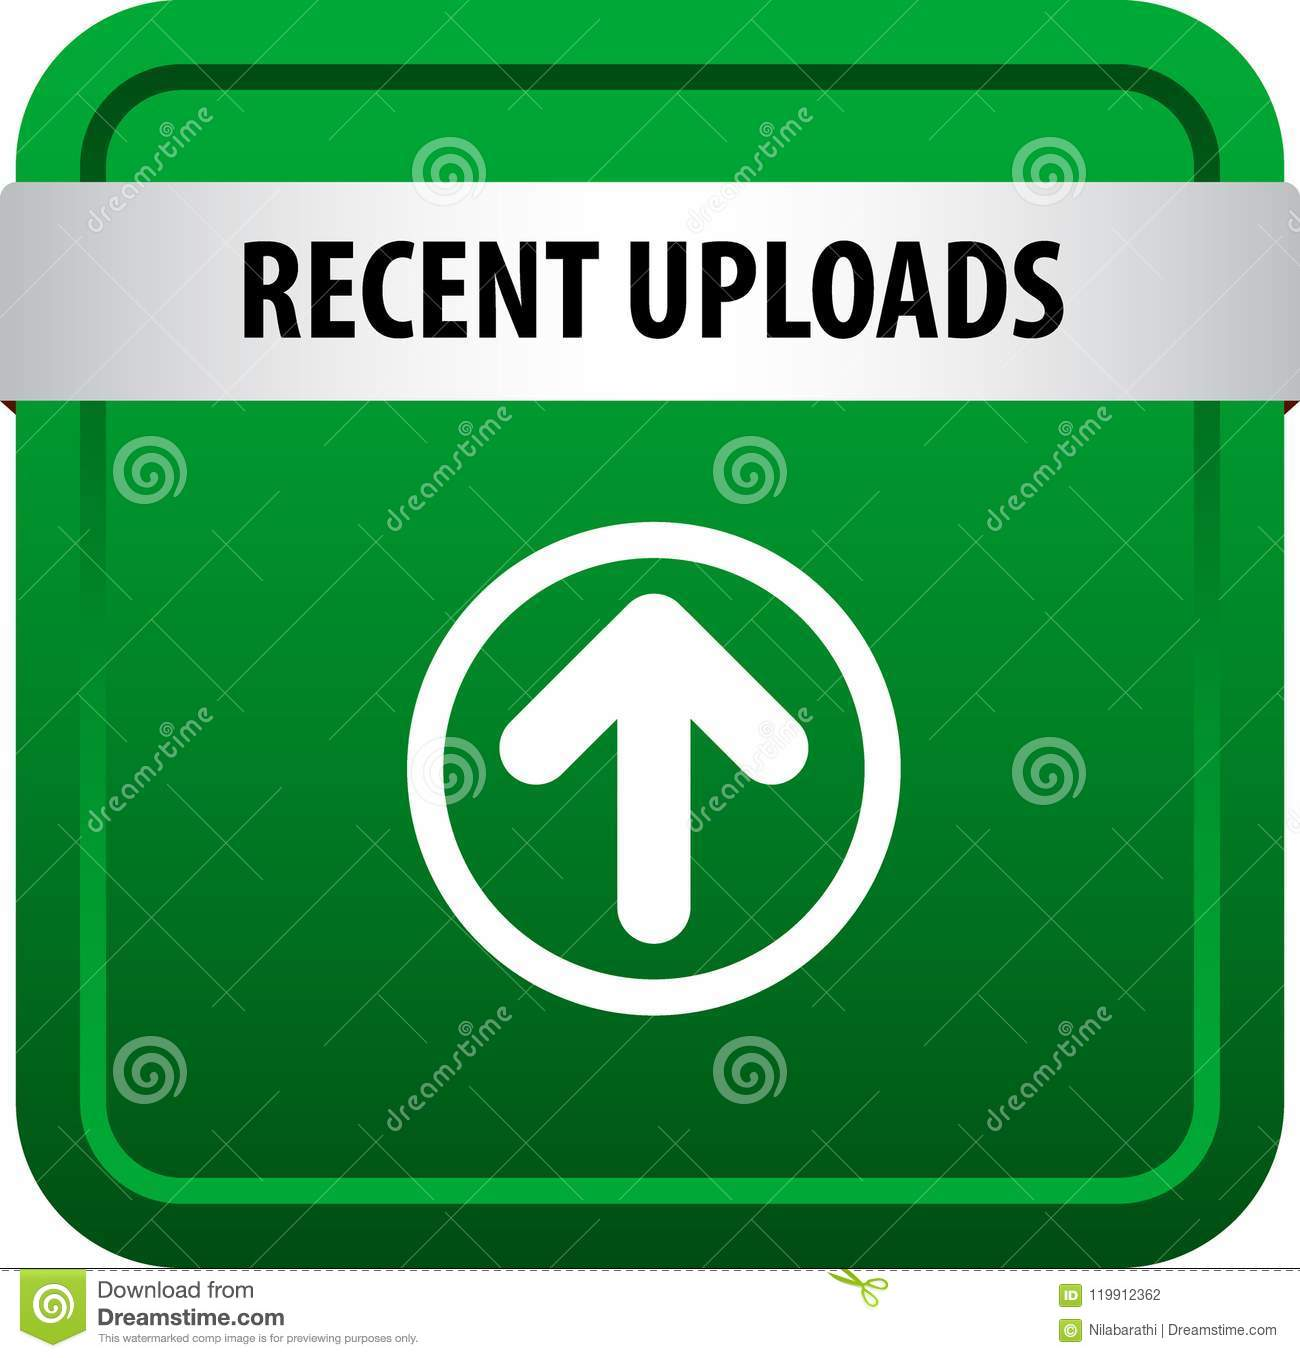 Recent uploadt Webknoop